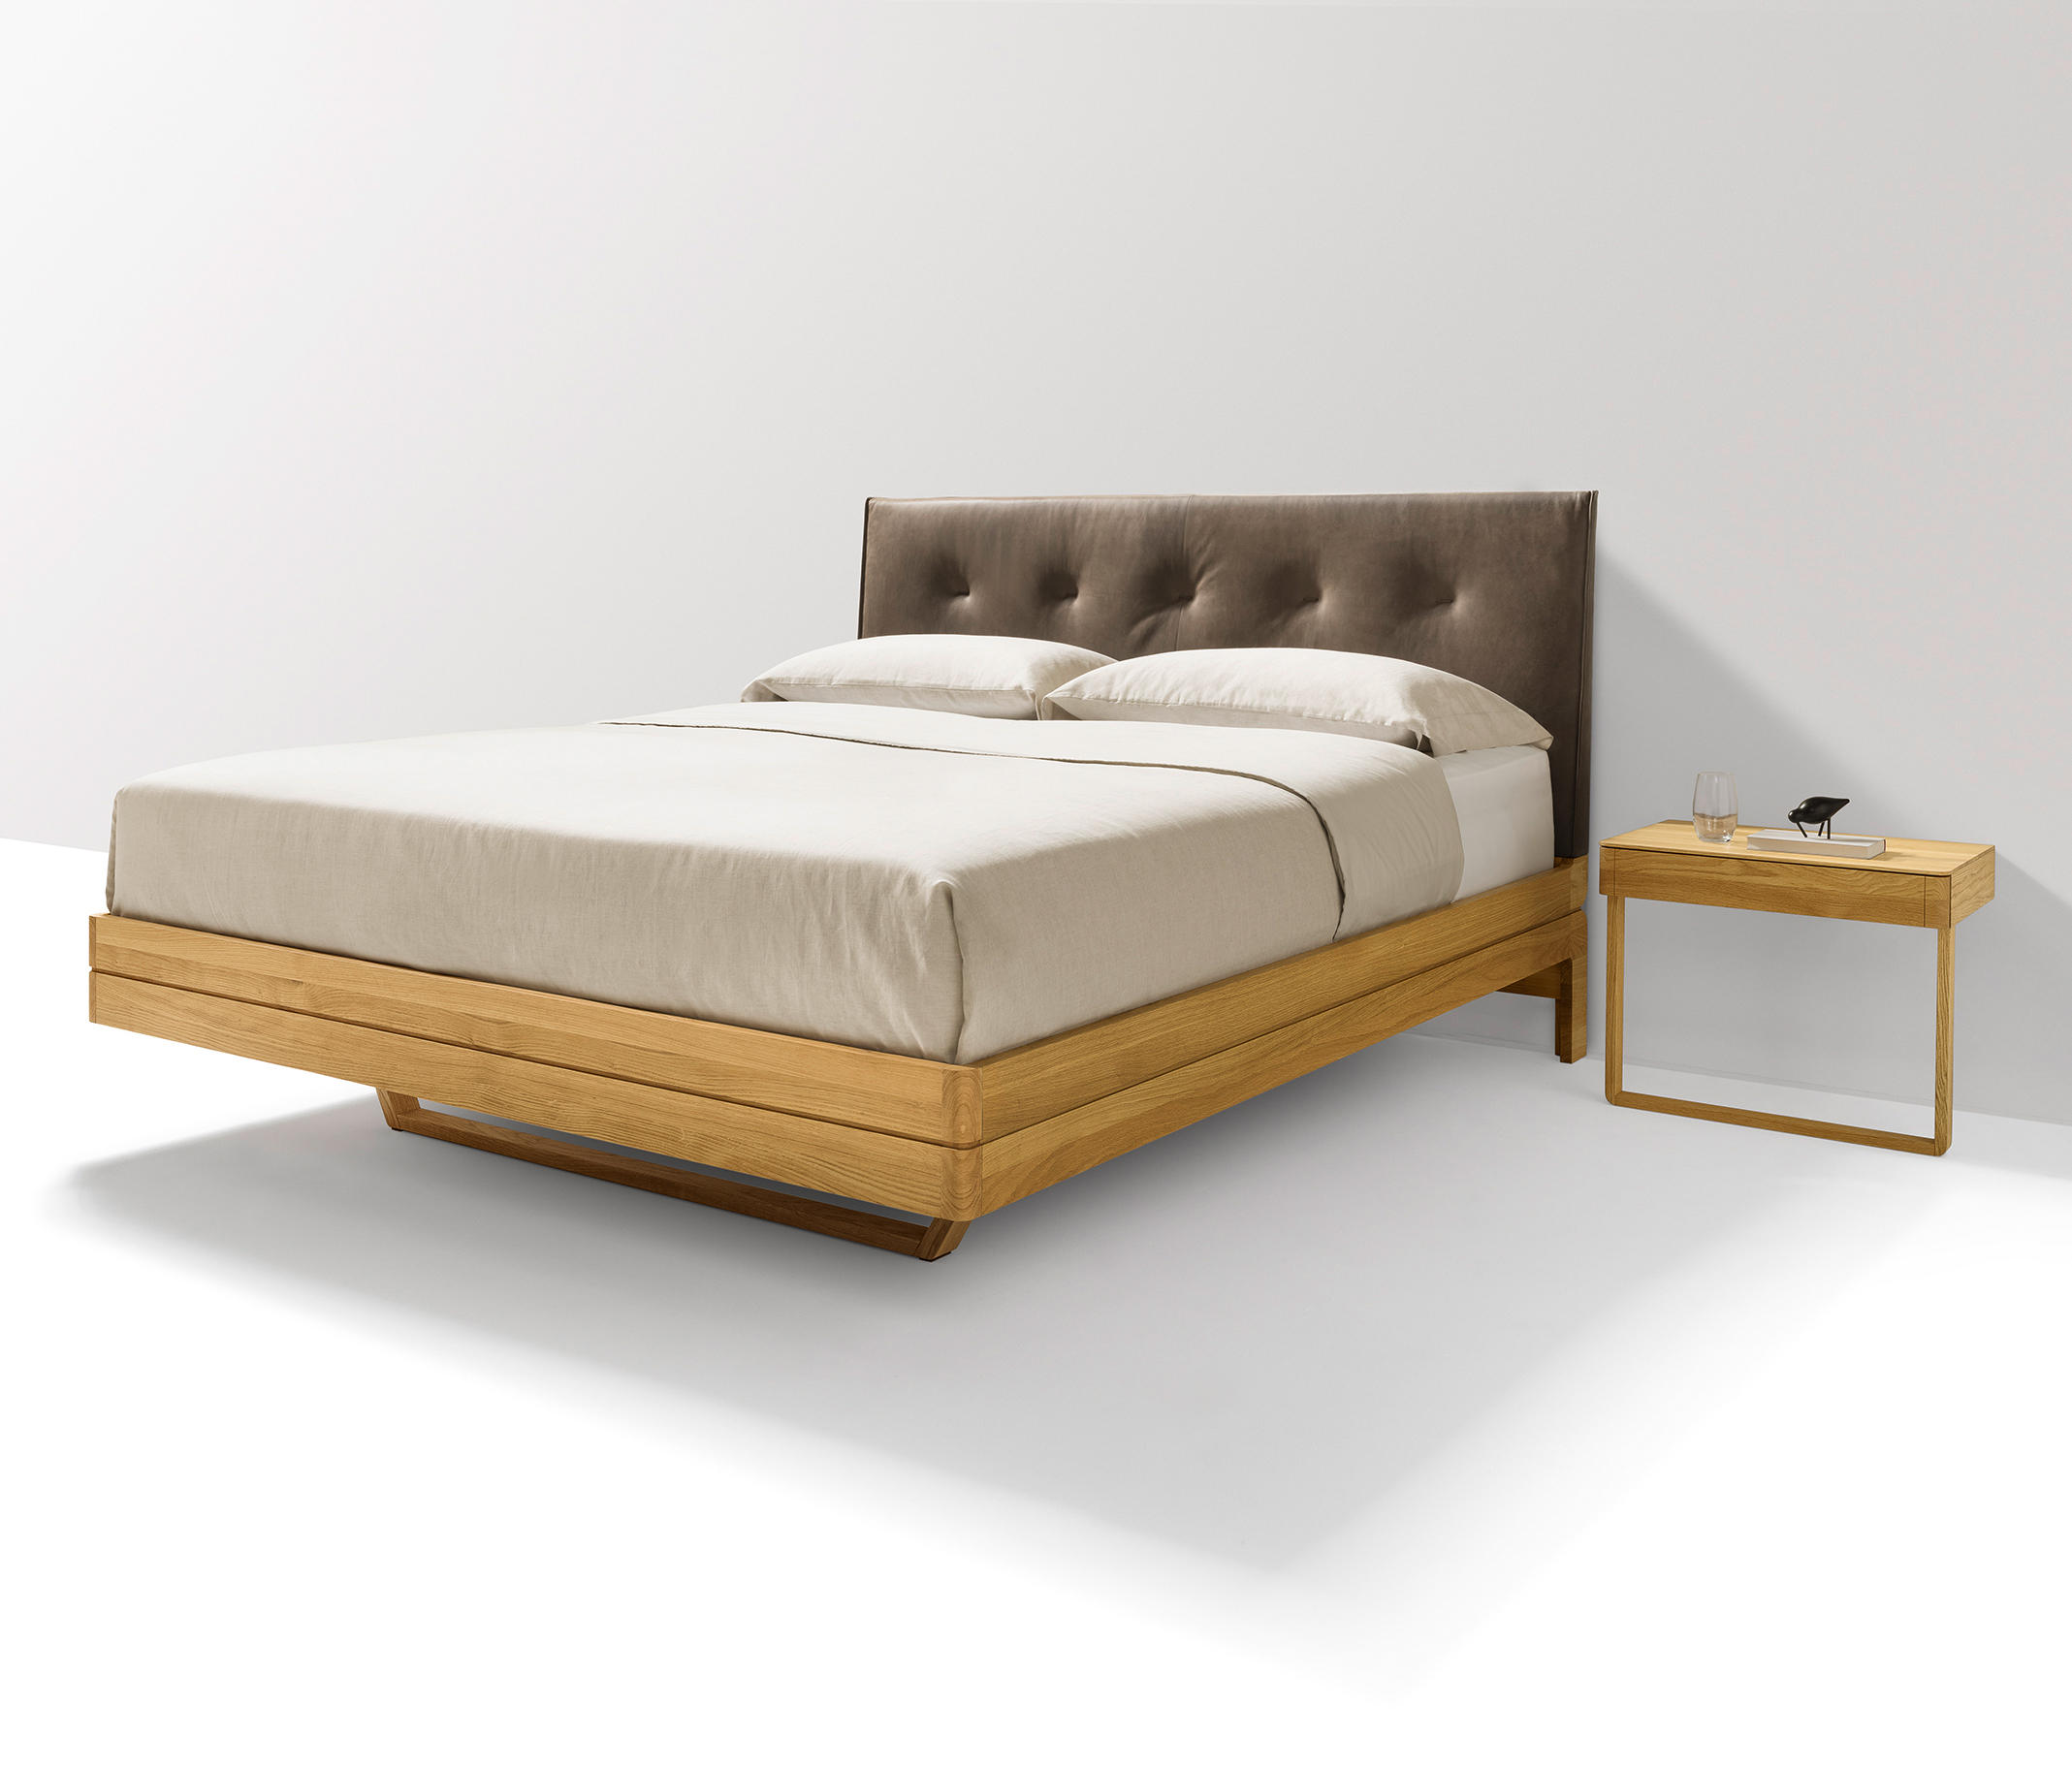 Float Bed Double Beds From Team 7 Architonic